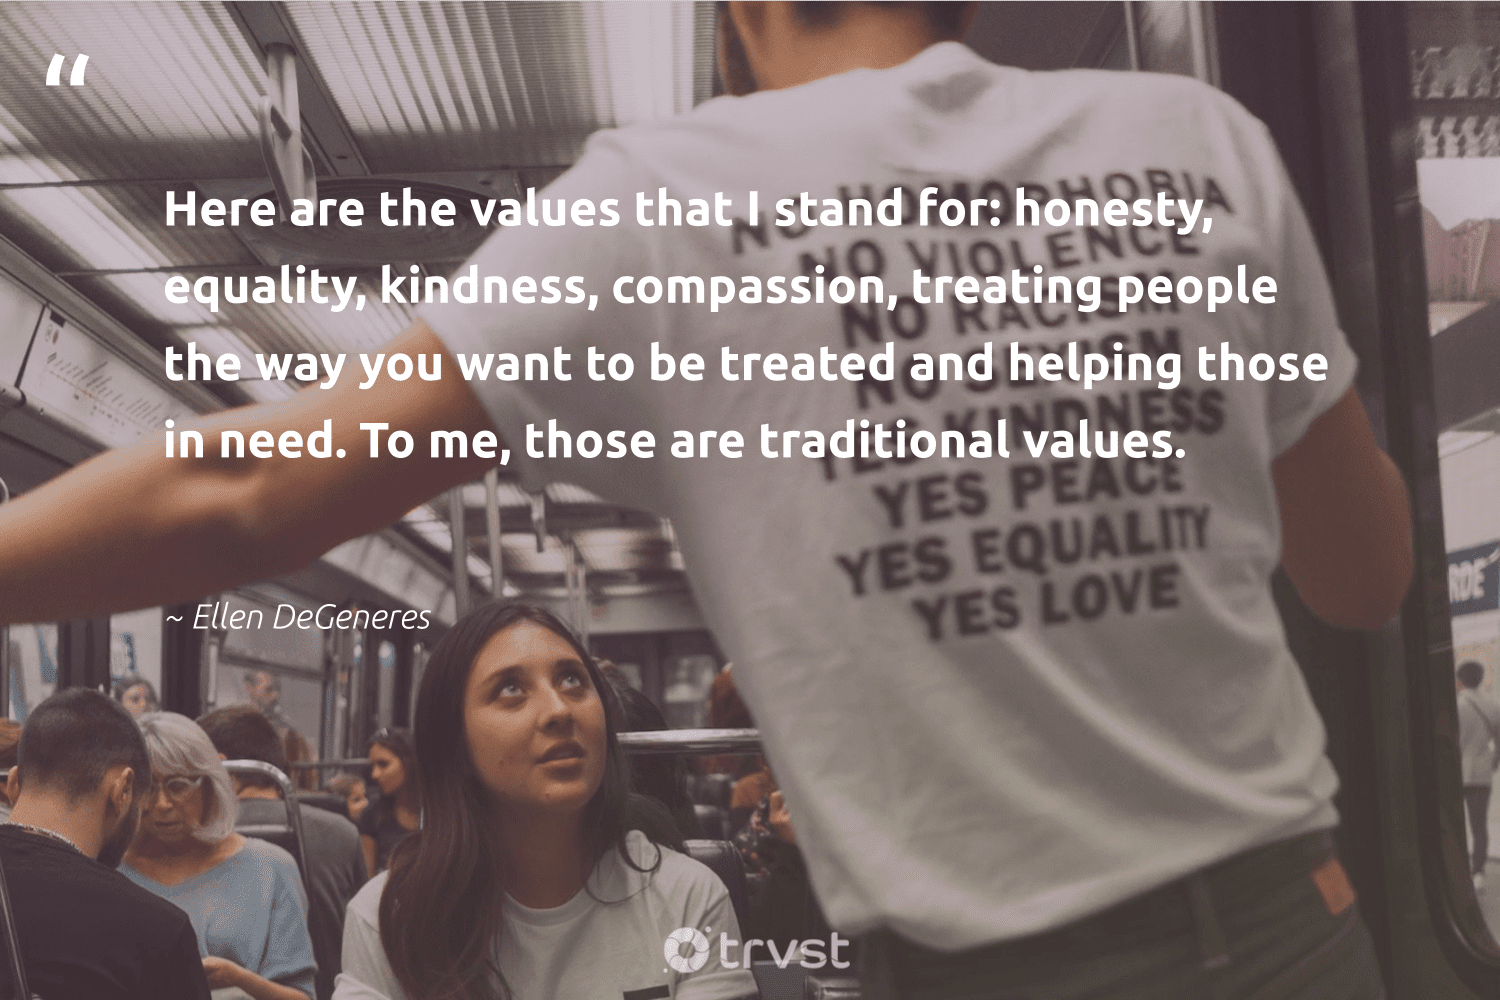 """""""Here are the values that I stand for: honesty, equality, kindness, compassion, treating people the way you want to be treated and helping those in need. To me, those are traditional values.""""  - Ellen DeGeneres #trvst #quotes #equality #standup #socialchange #makeadifference #dogood #empowerment #bethechange #socialgood #beinspired #equalopportunity"""